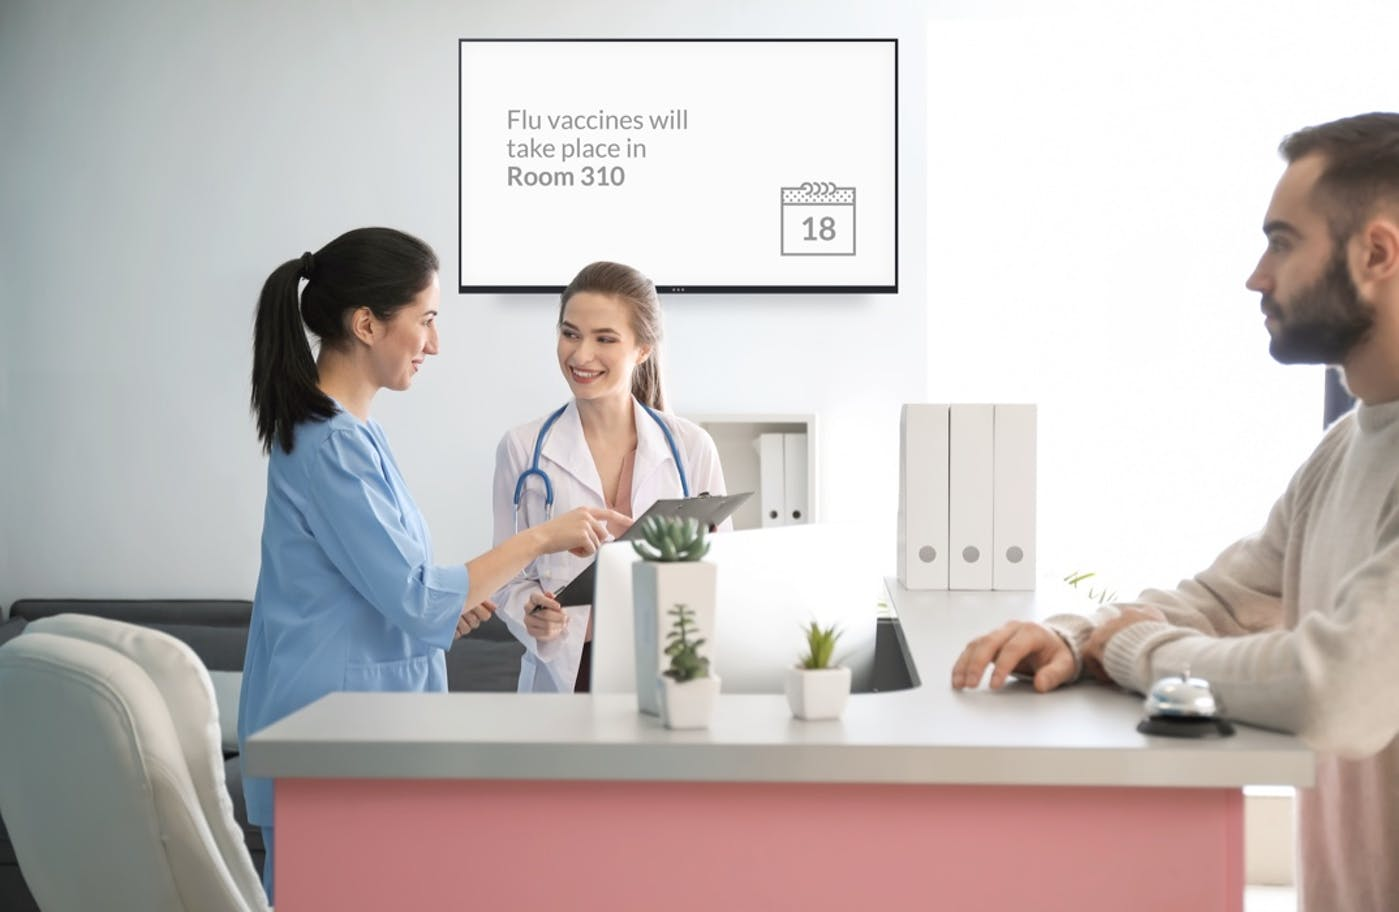 How to Use Screens to Share Critical Information in Your Hospital